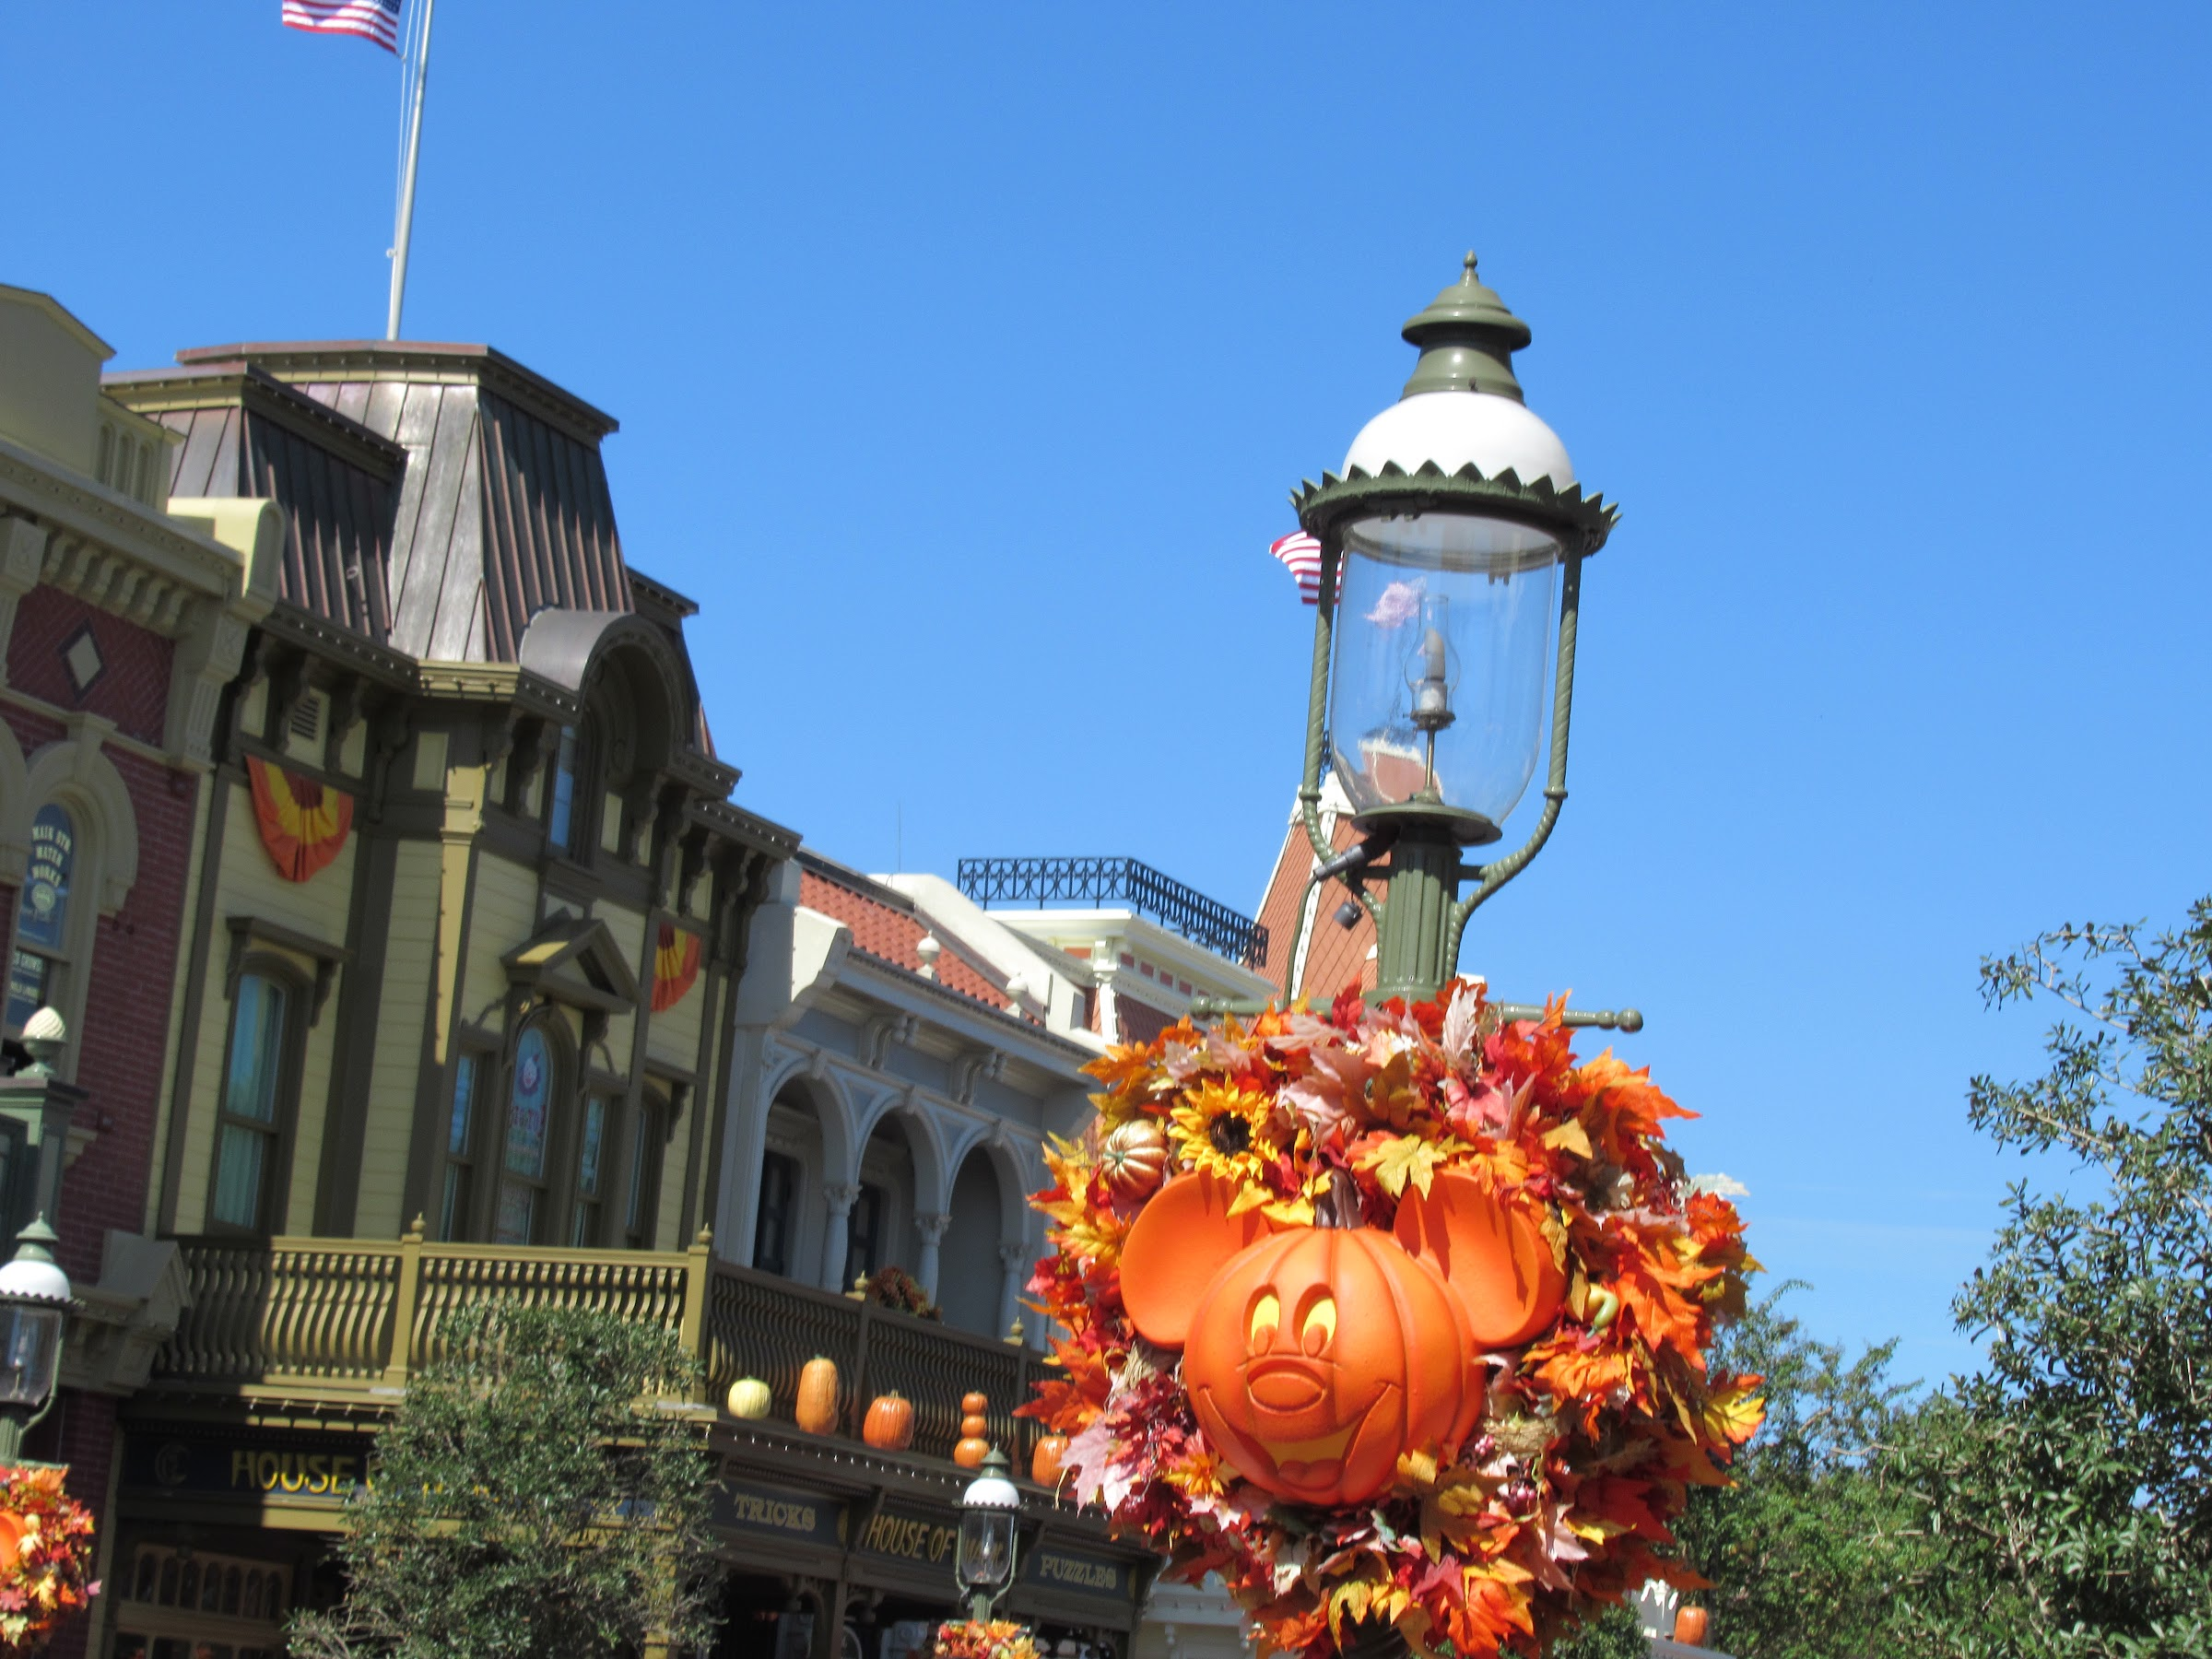 The Magic Kingdom at Walt Disney World in October